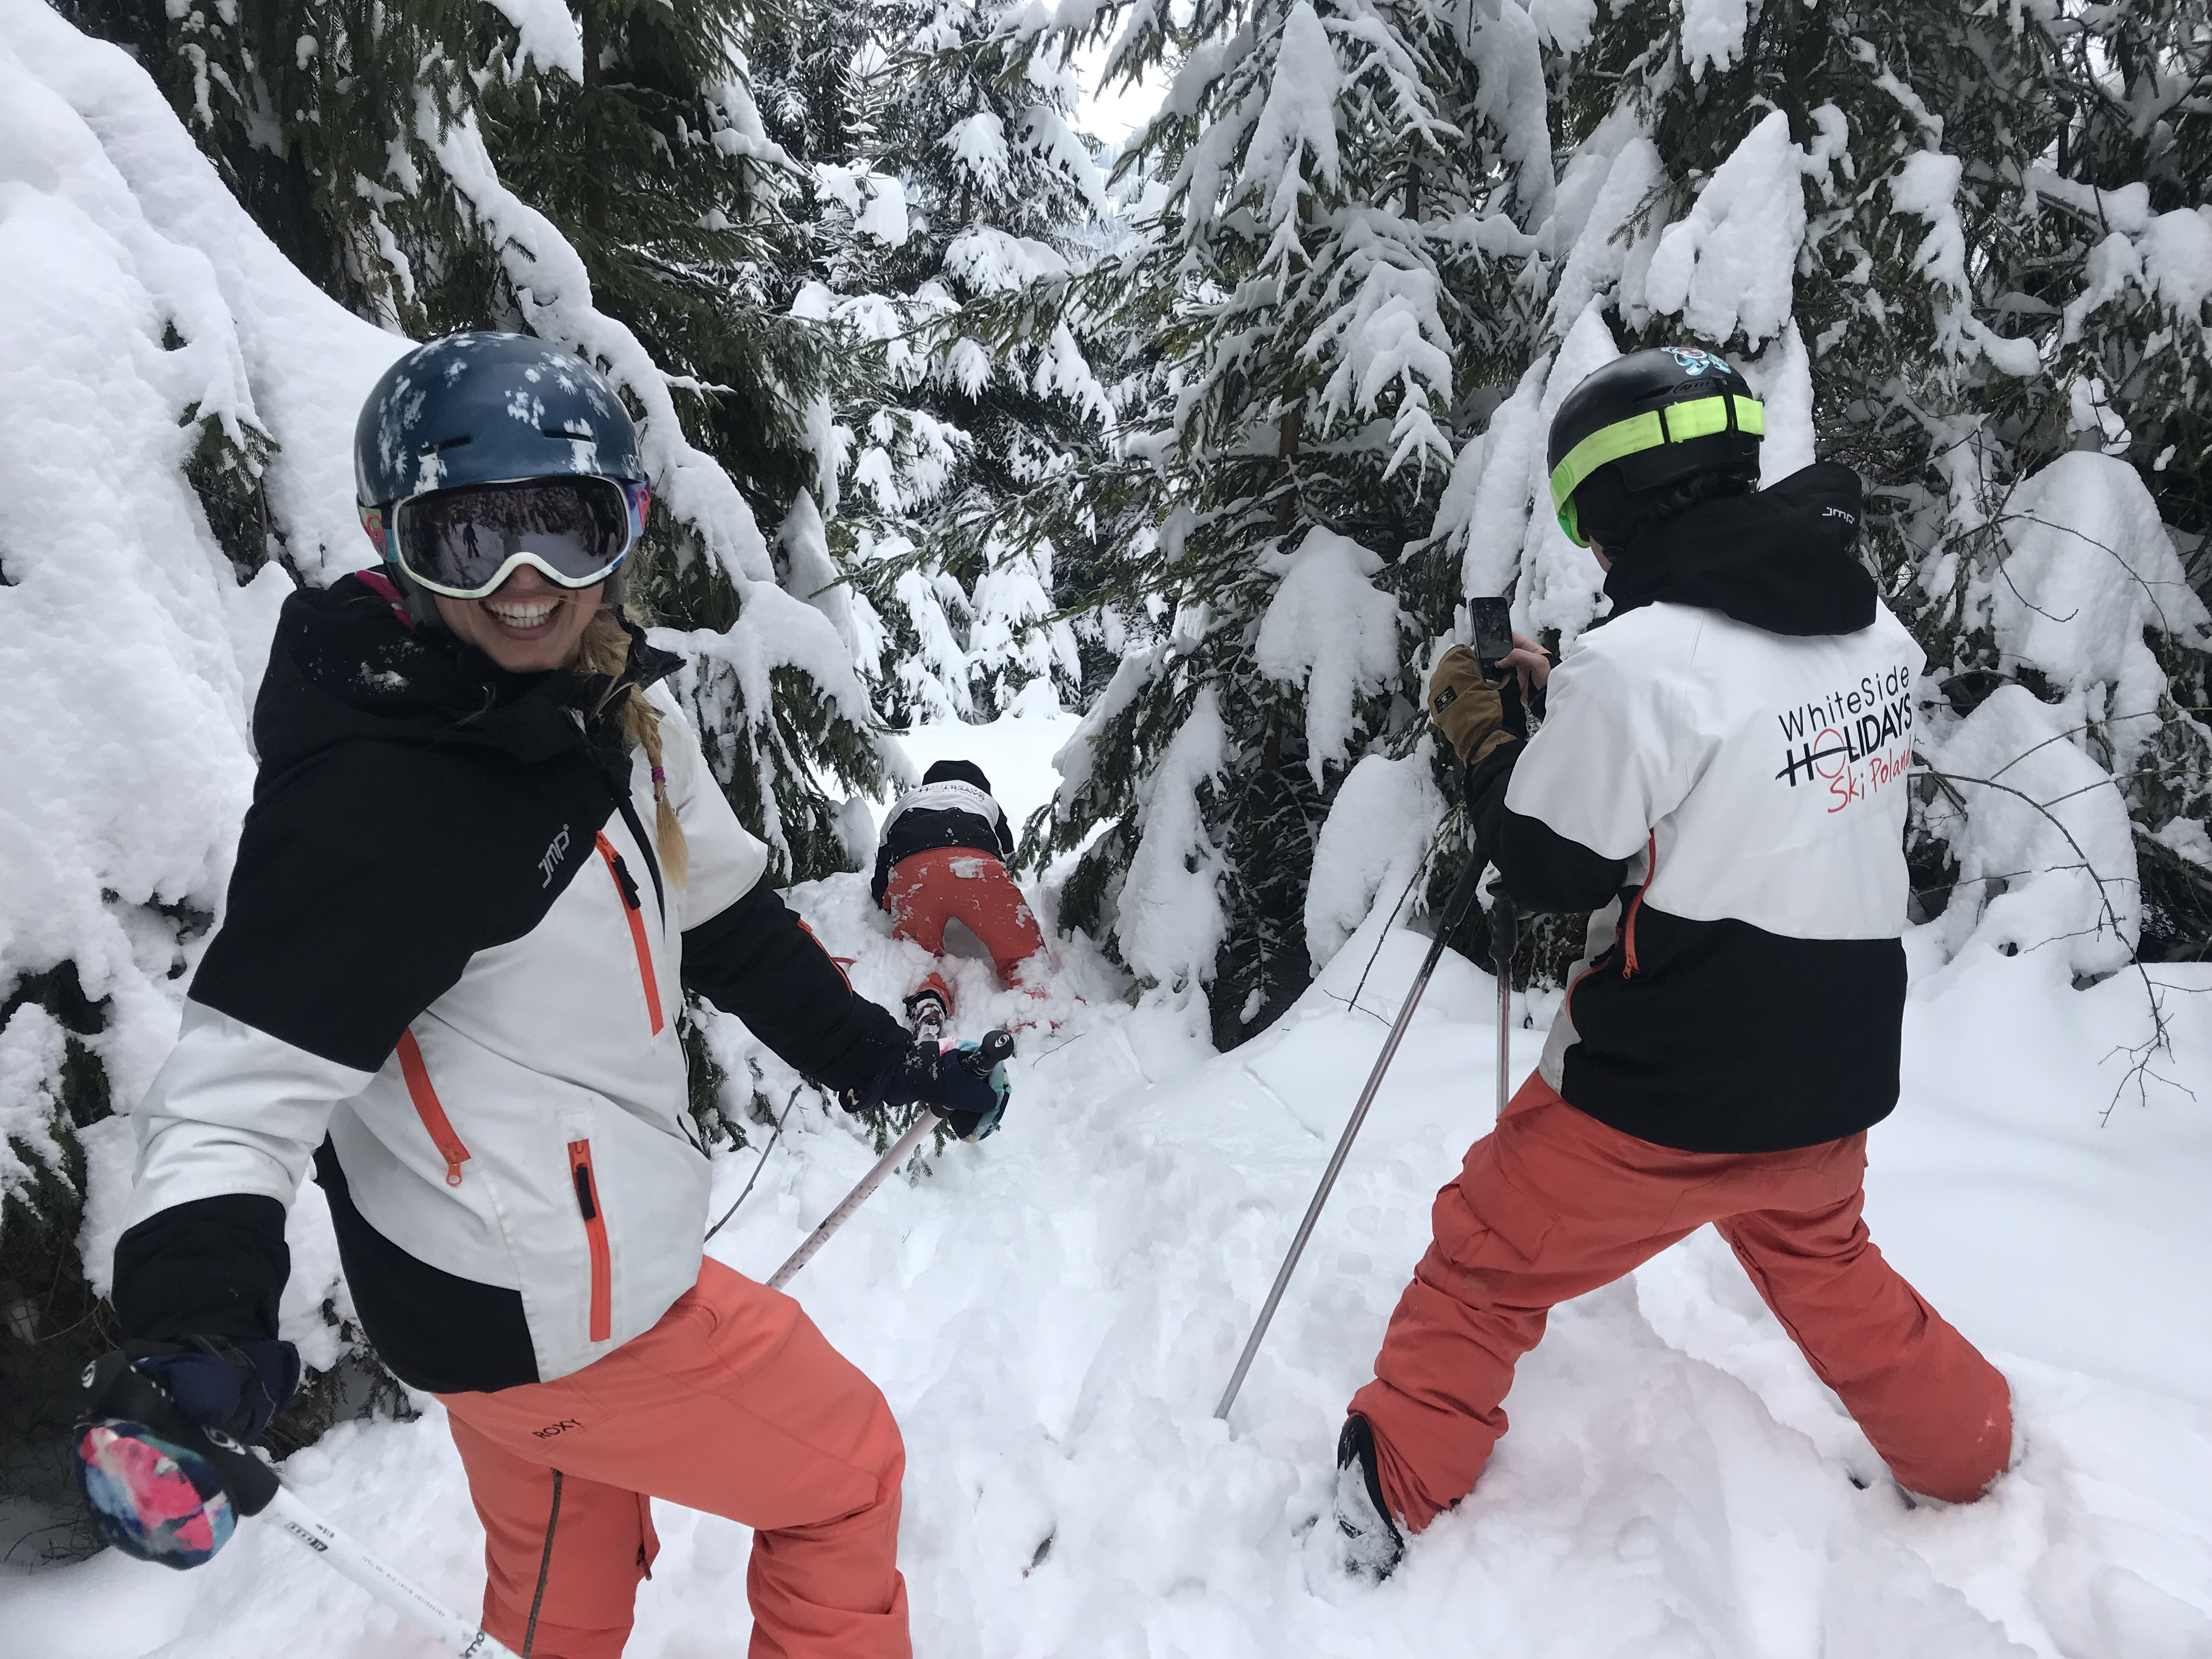 Some lunch time skiing fun in Zakopane with our instructors